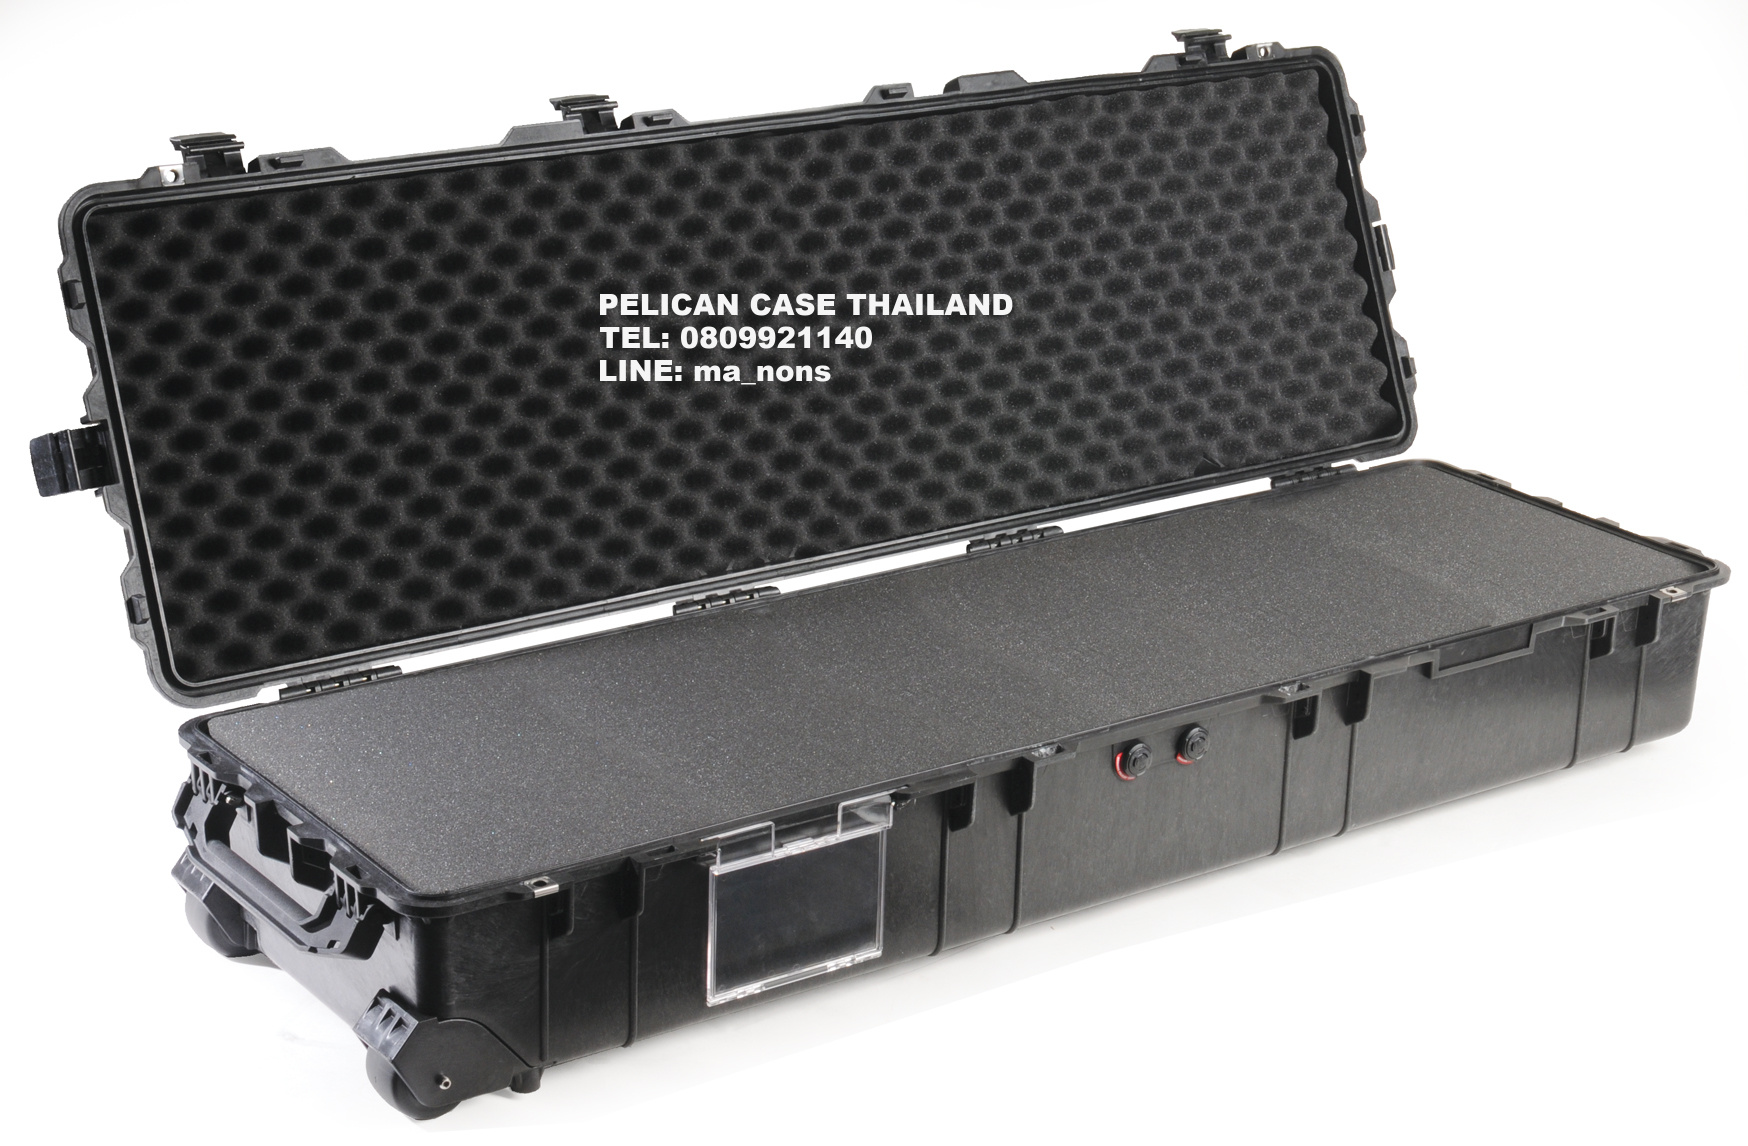 PELICAN™ 1770 CASE WITH FOAM